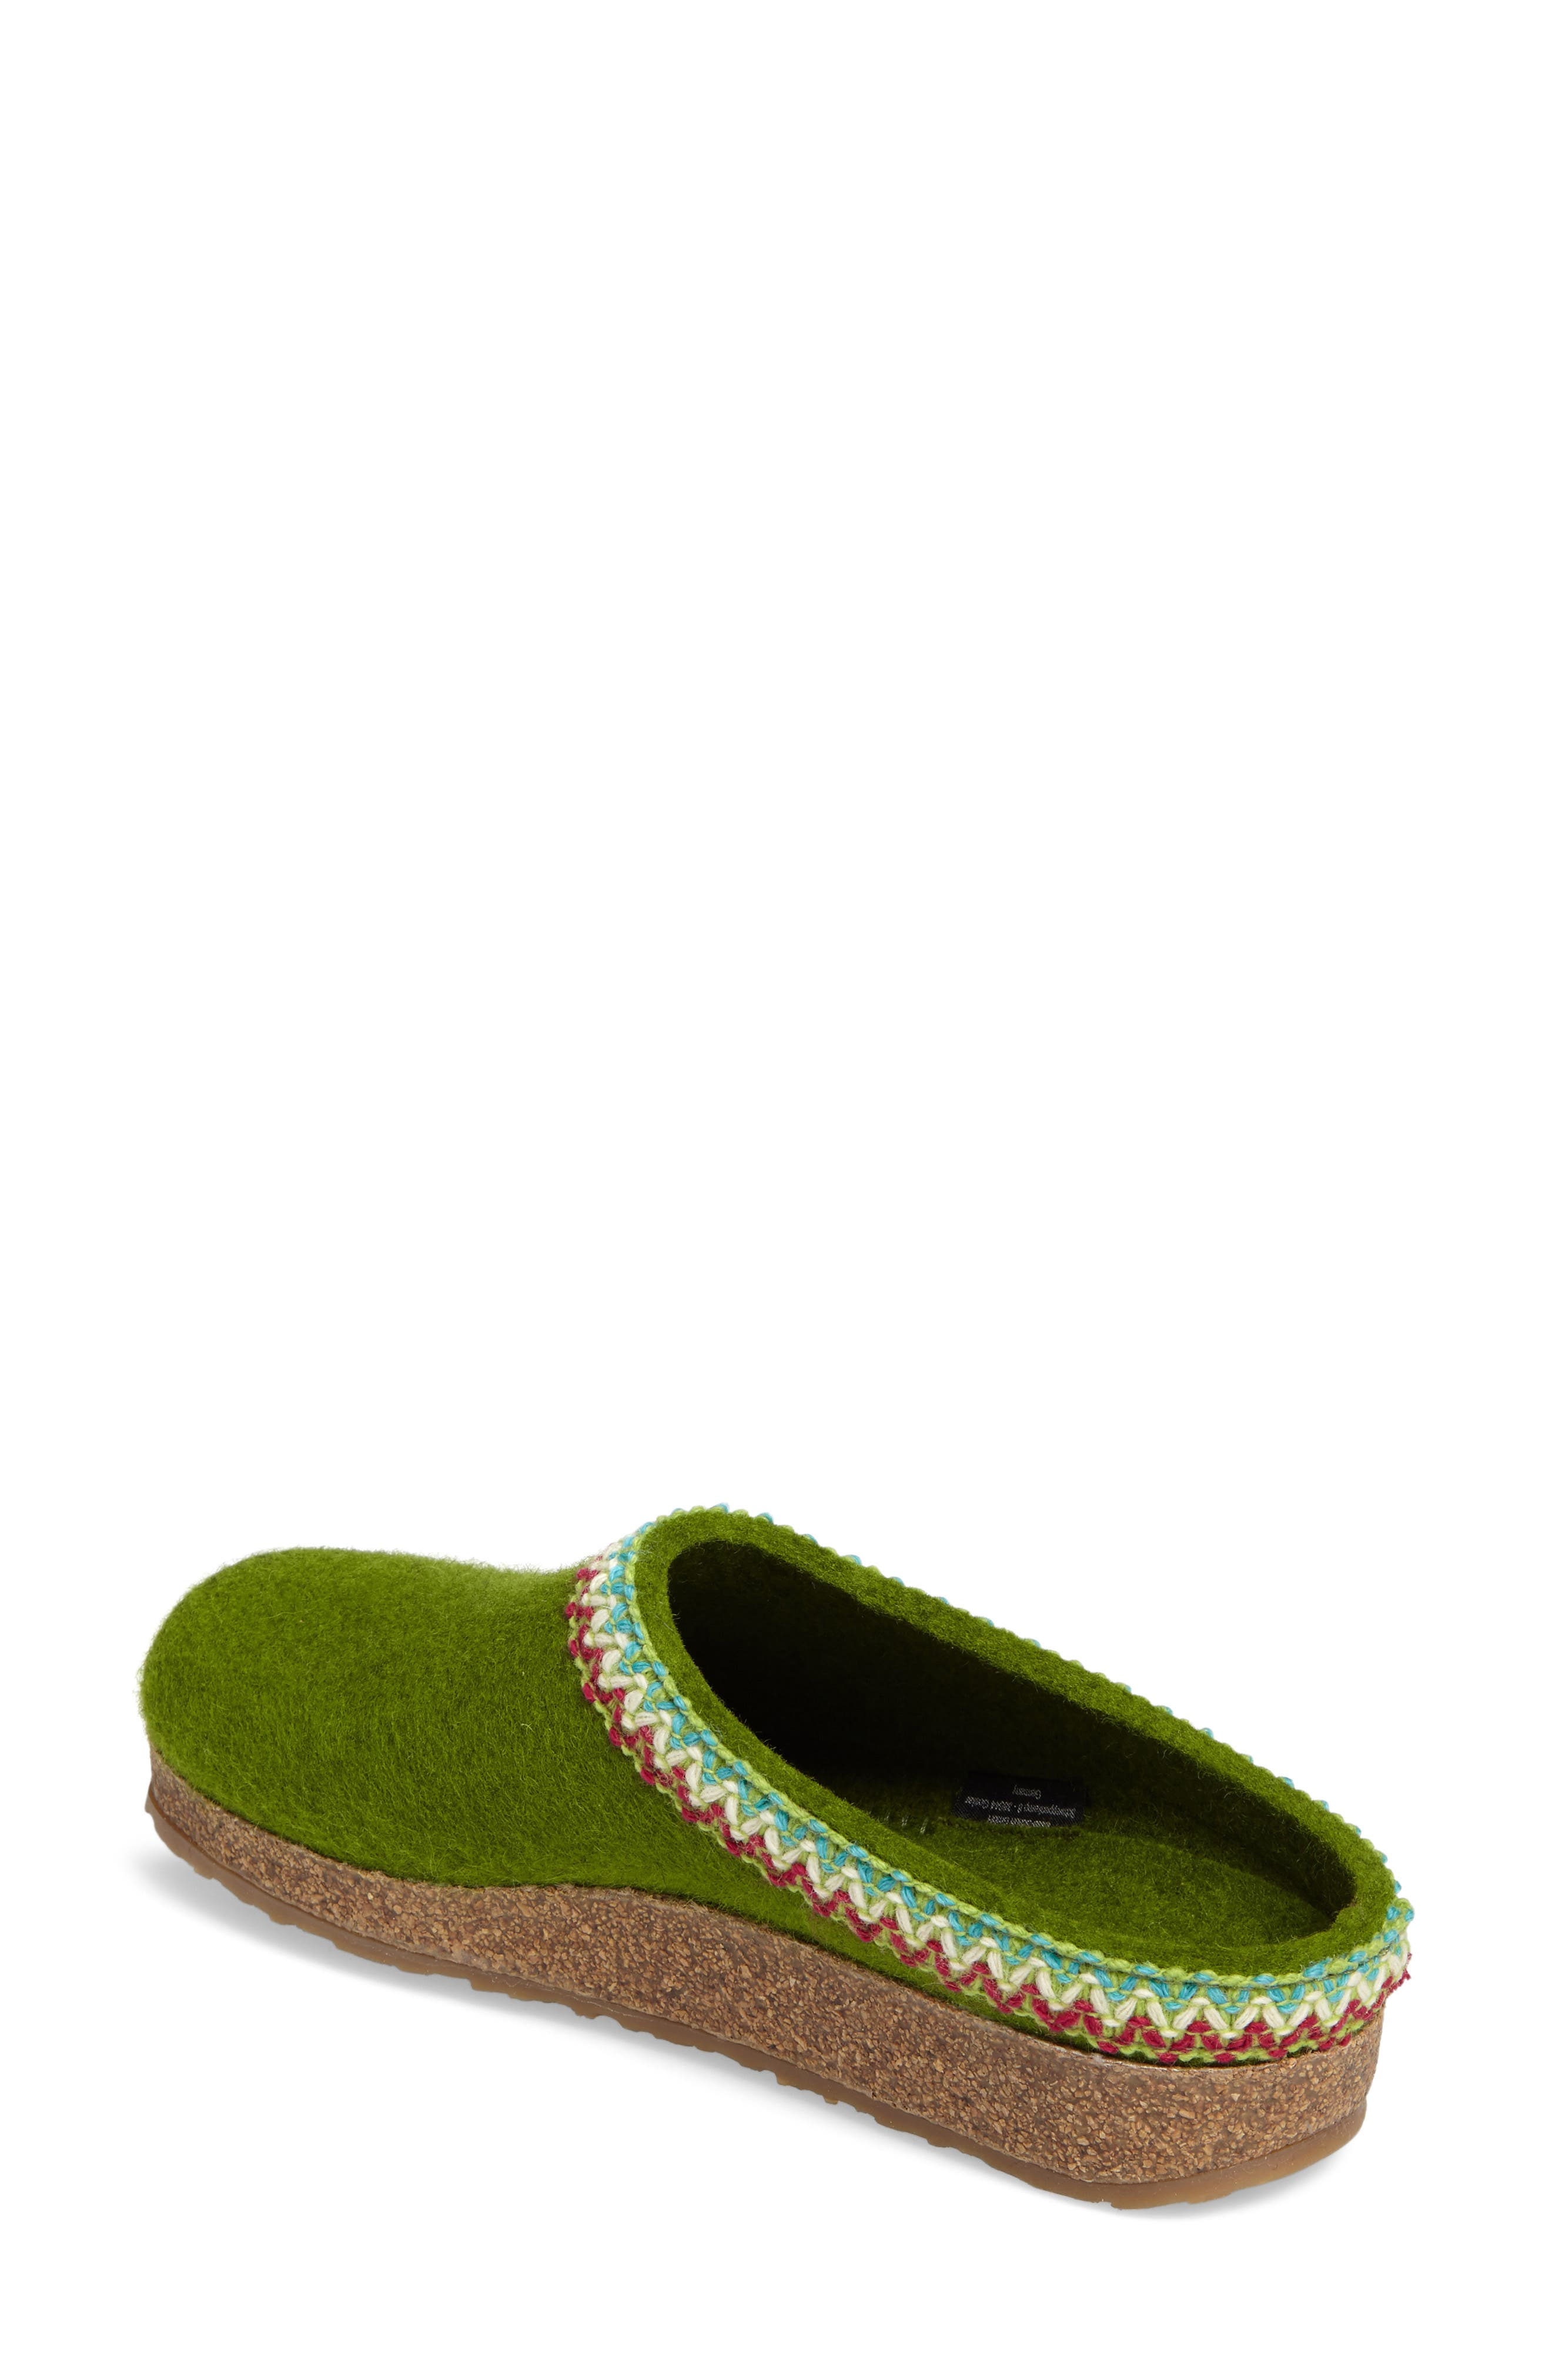 Zigzag Slipper,                             Alternate thumbnail 8, color,